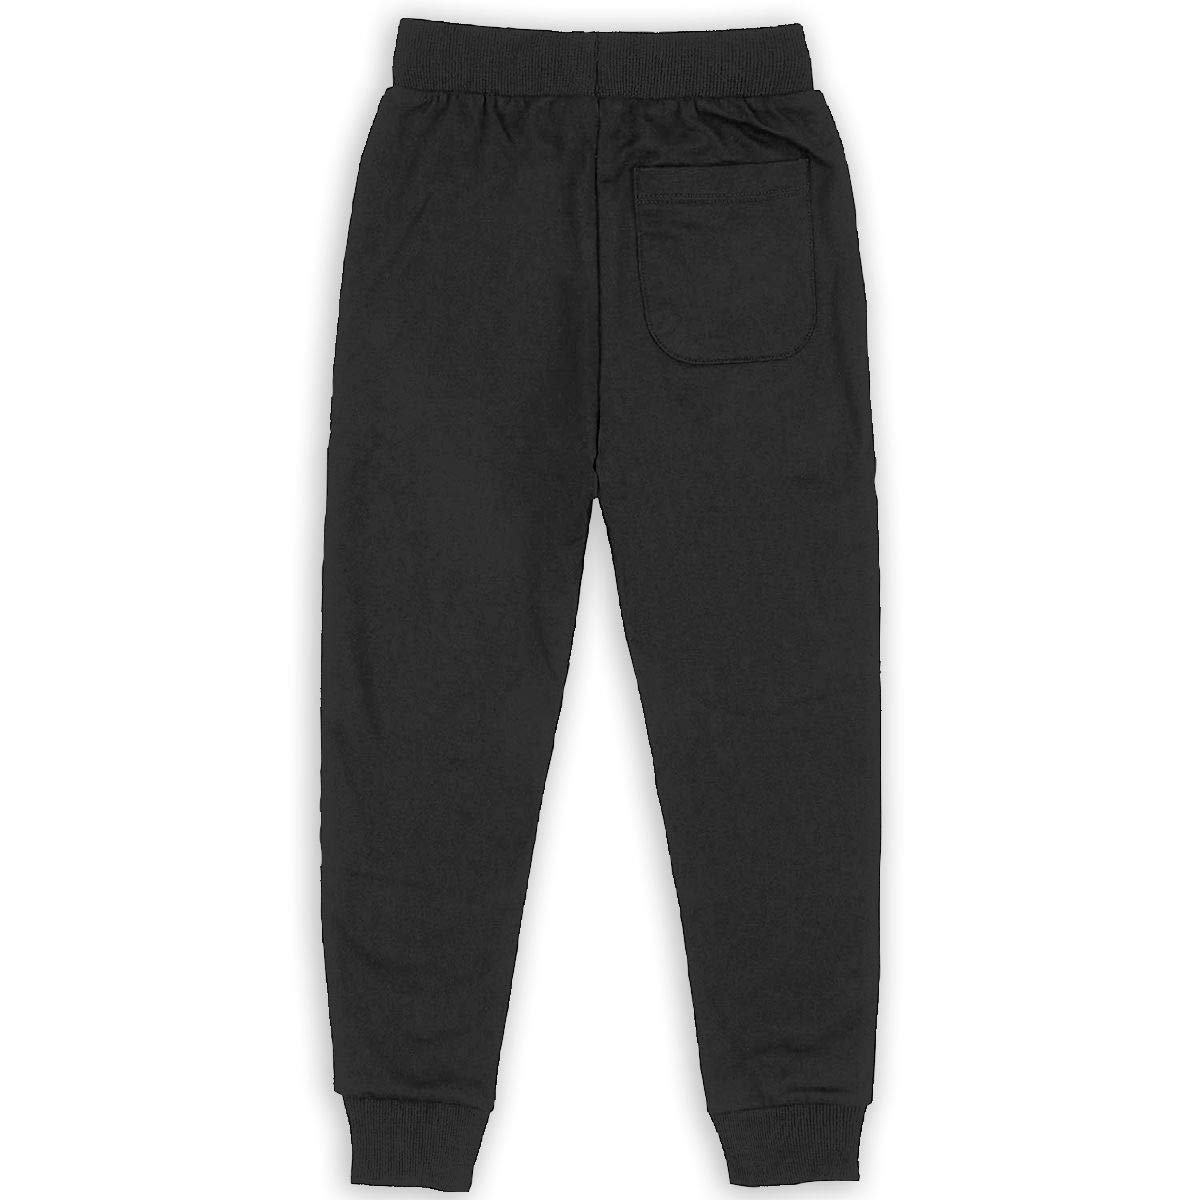 Kim Mittelstaedt Grizzly Pear Boys Big Active Basic Casual Pants Sweatpants for Boys Black